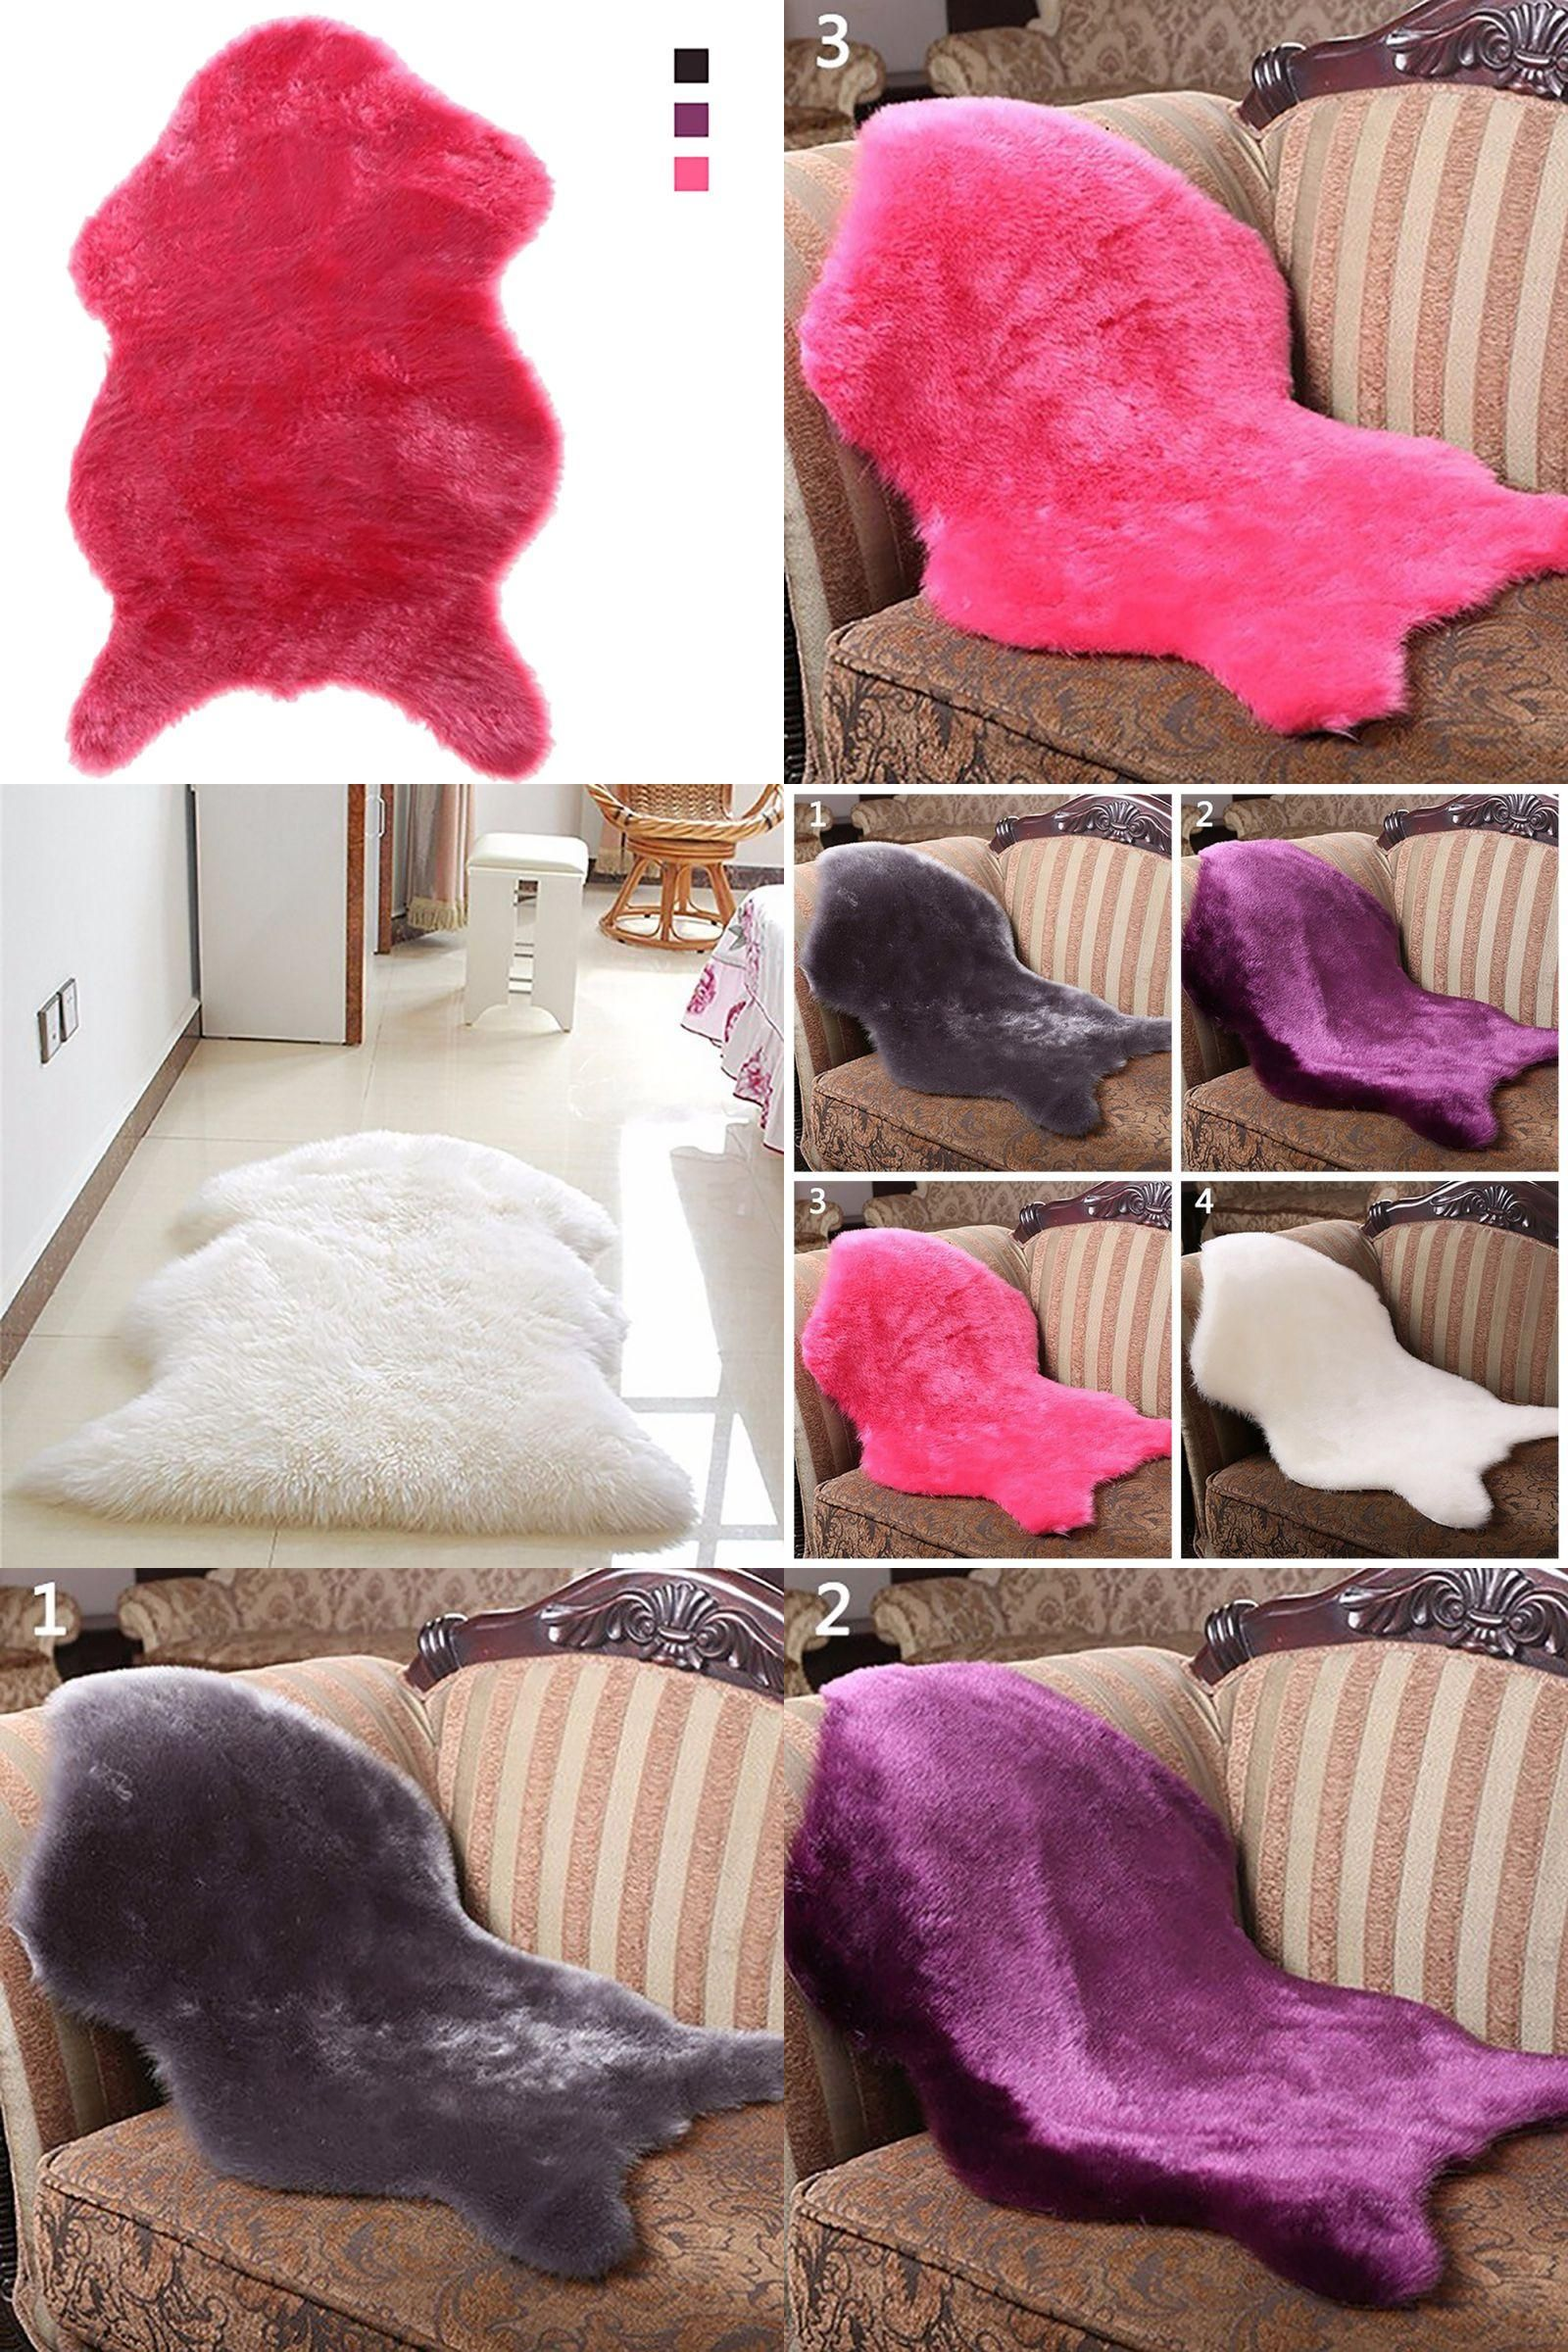 Visit to Buy] Hot Soft Faux Sheepskin Rug Mat Carpet home Use Pad